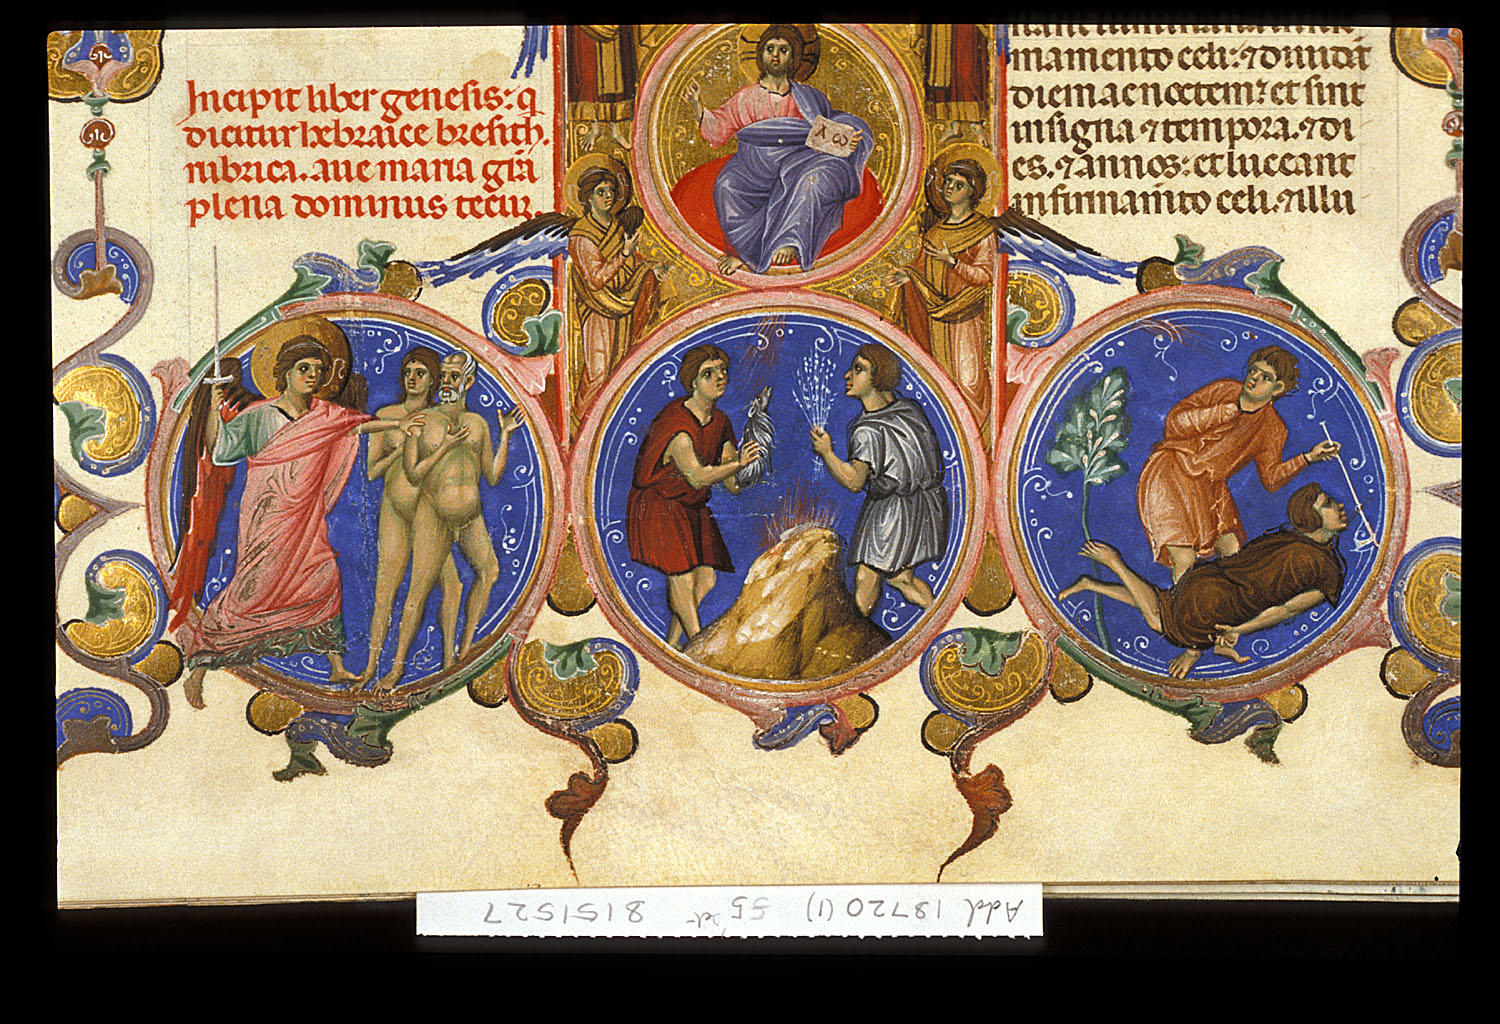 The Expulsion, Cain and Abel